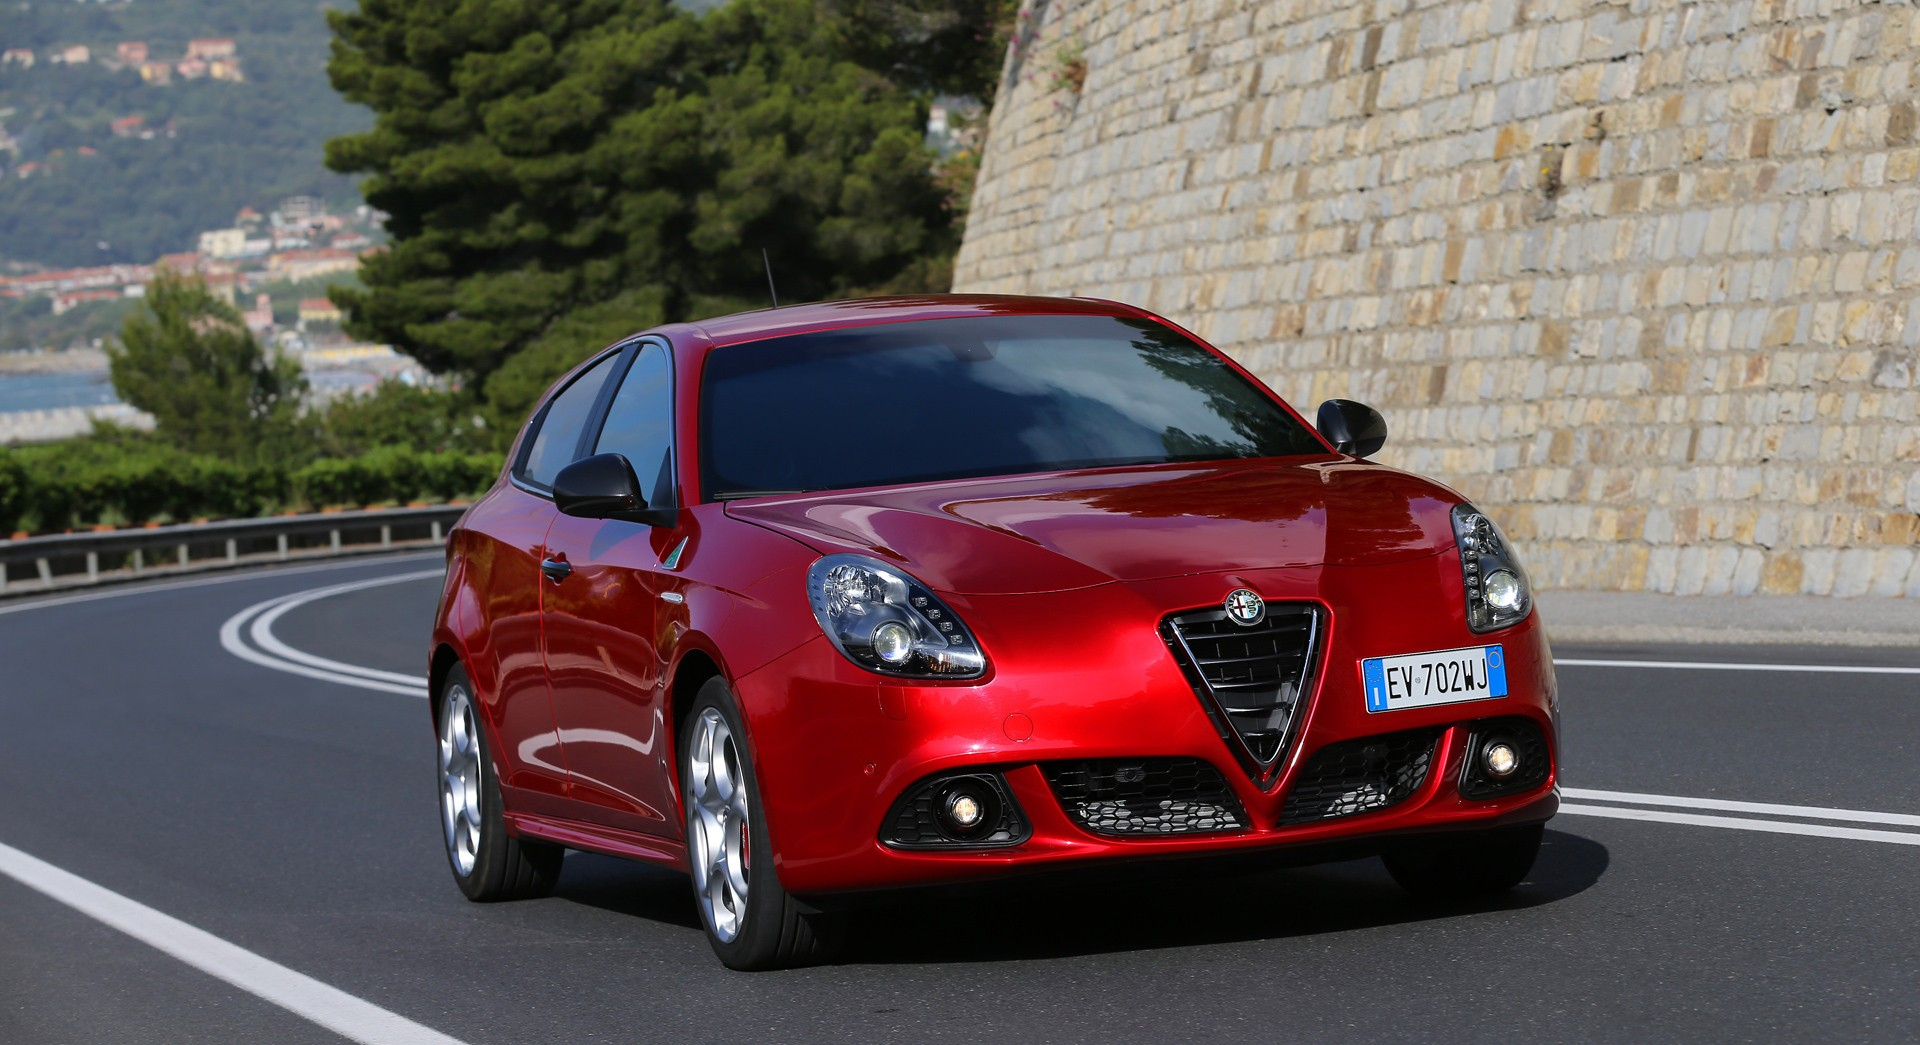 alfa romeo giulietta wallpaper red awesome hd desktop wallpapers 4k hd. Black Bedroom Furniture Sets. Home Design Ideas